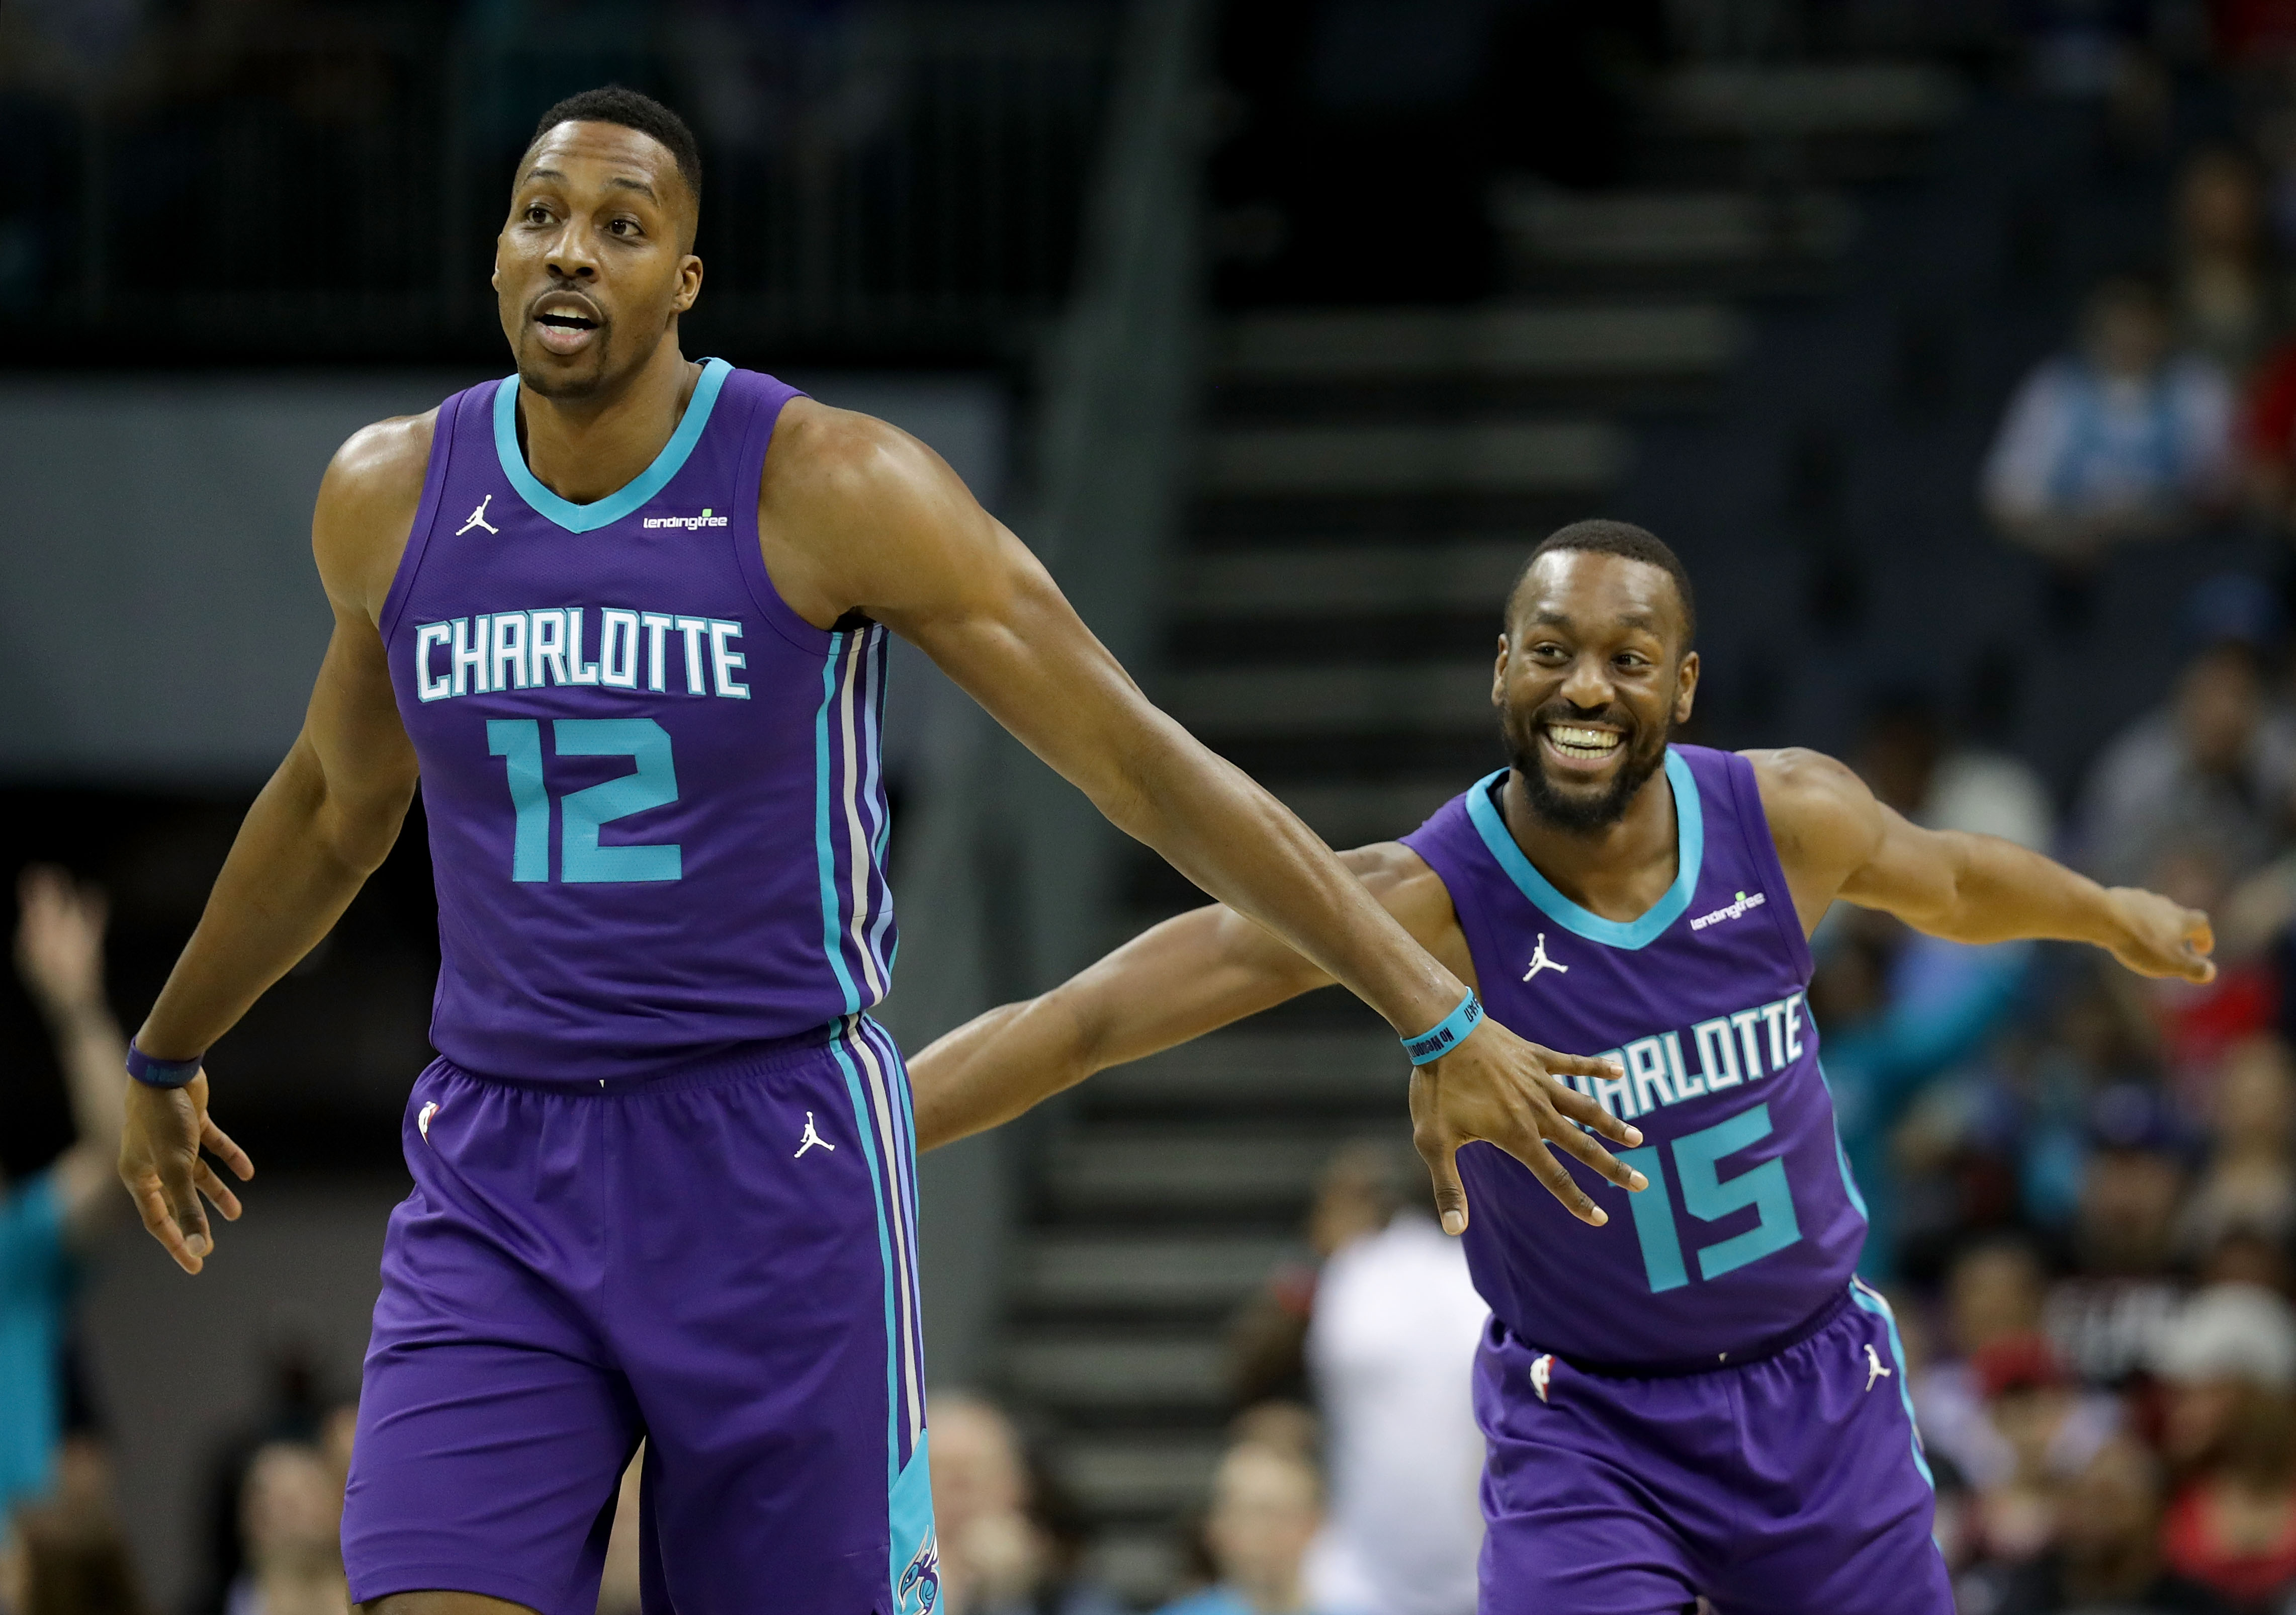 Lackluster Pistons get drilled by Hornets